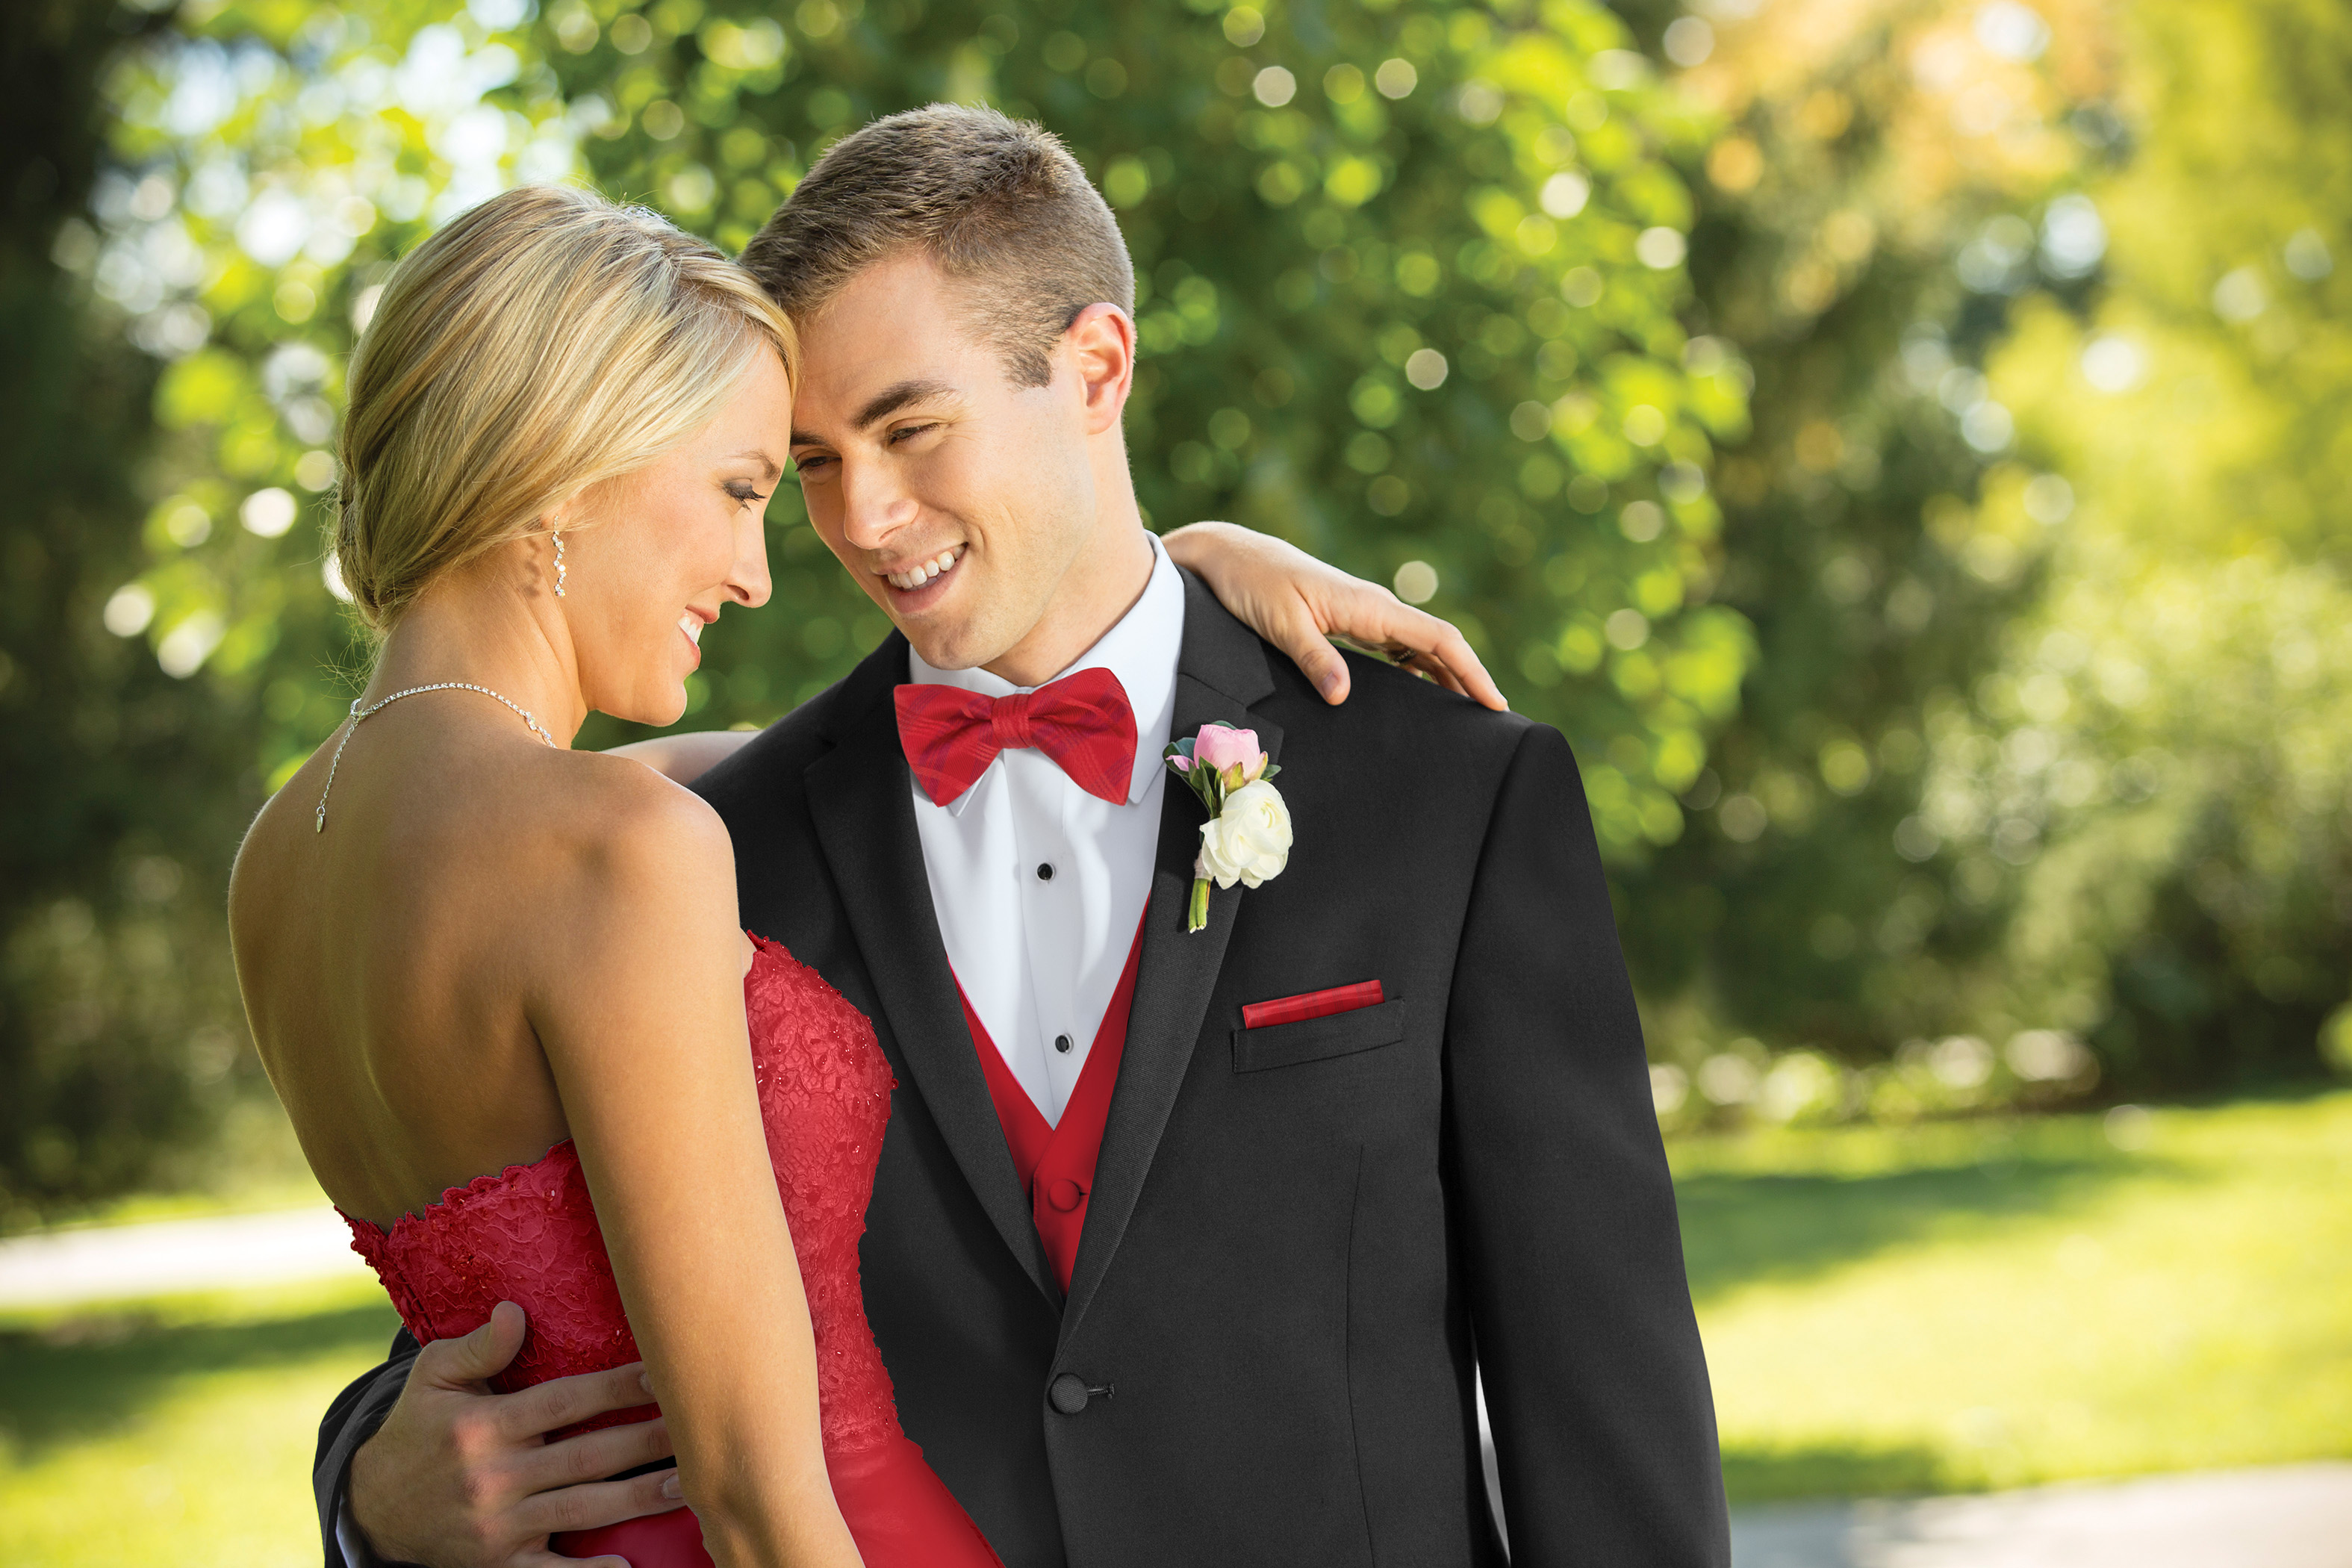 How to match a tux to a prom dress